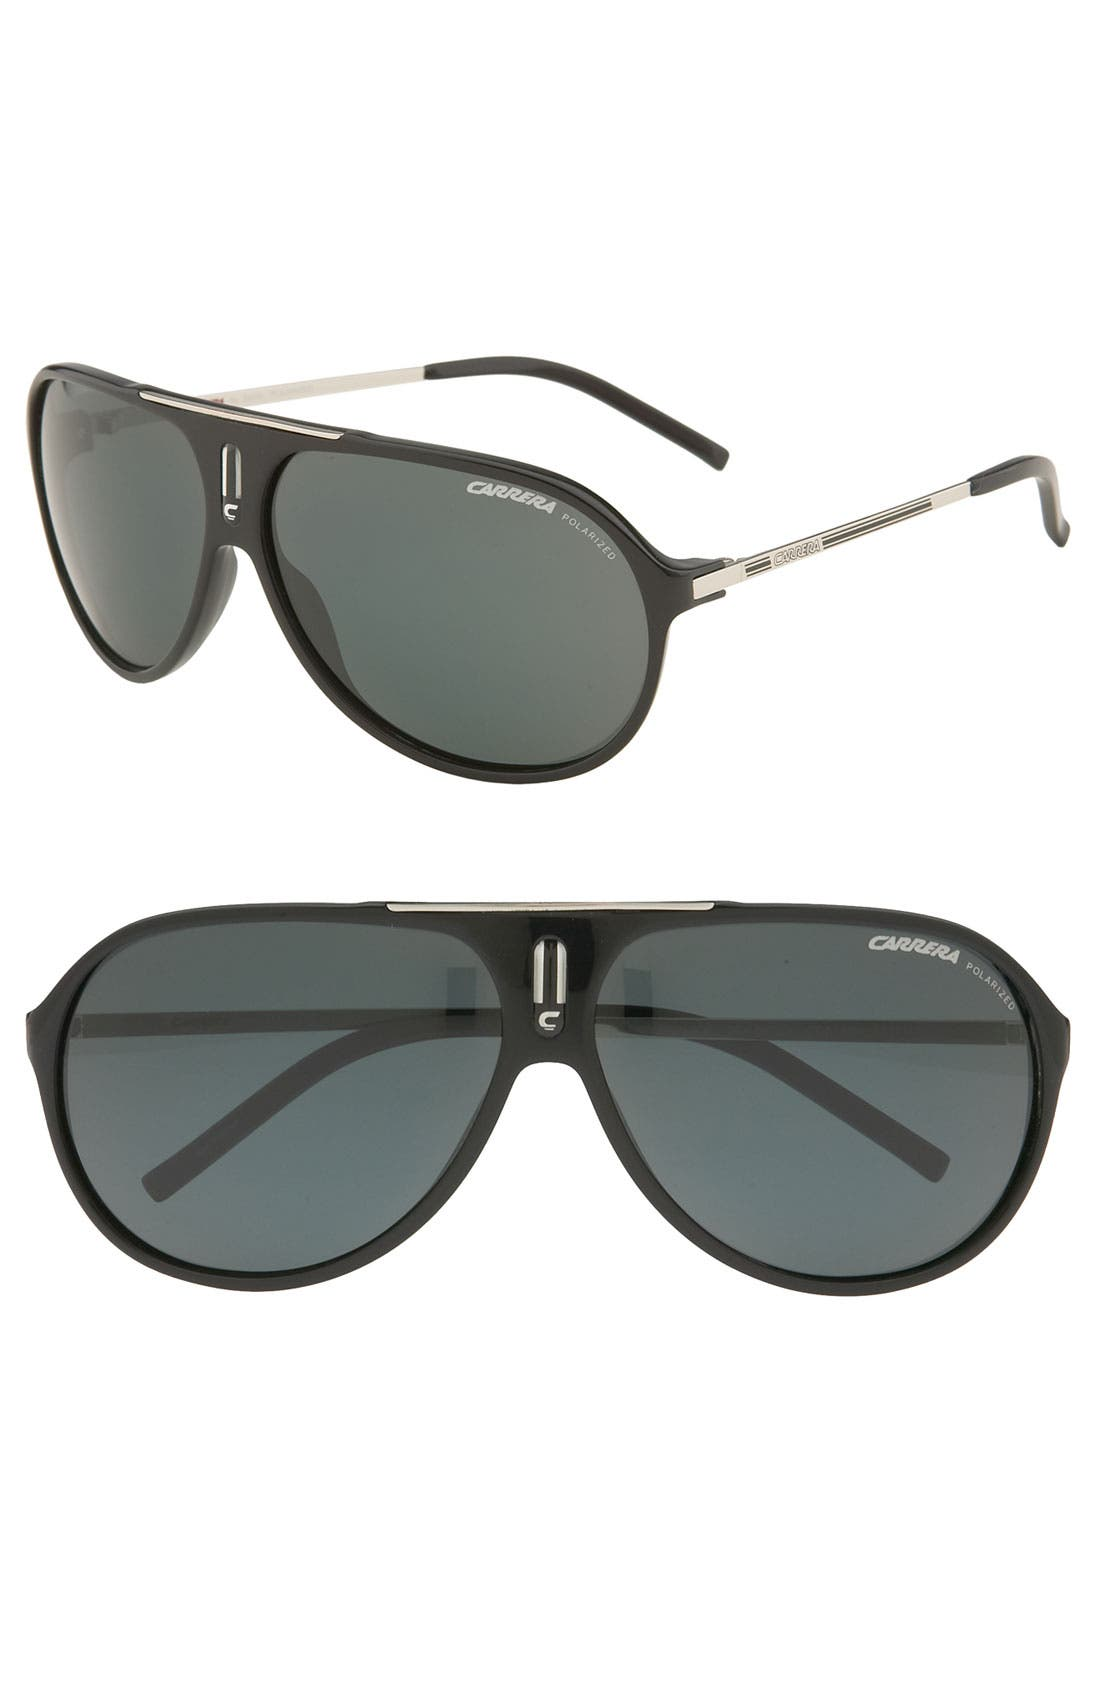 Main Image - Carrera Eyewear 'Hot' 64mm Polarized Vintage Inspired Aviator Sunglasses